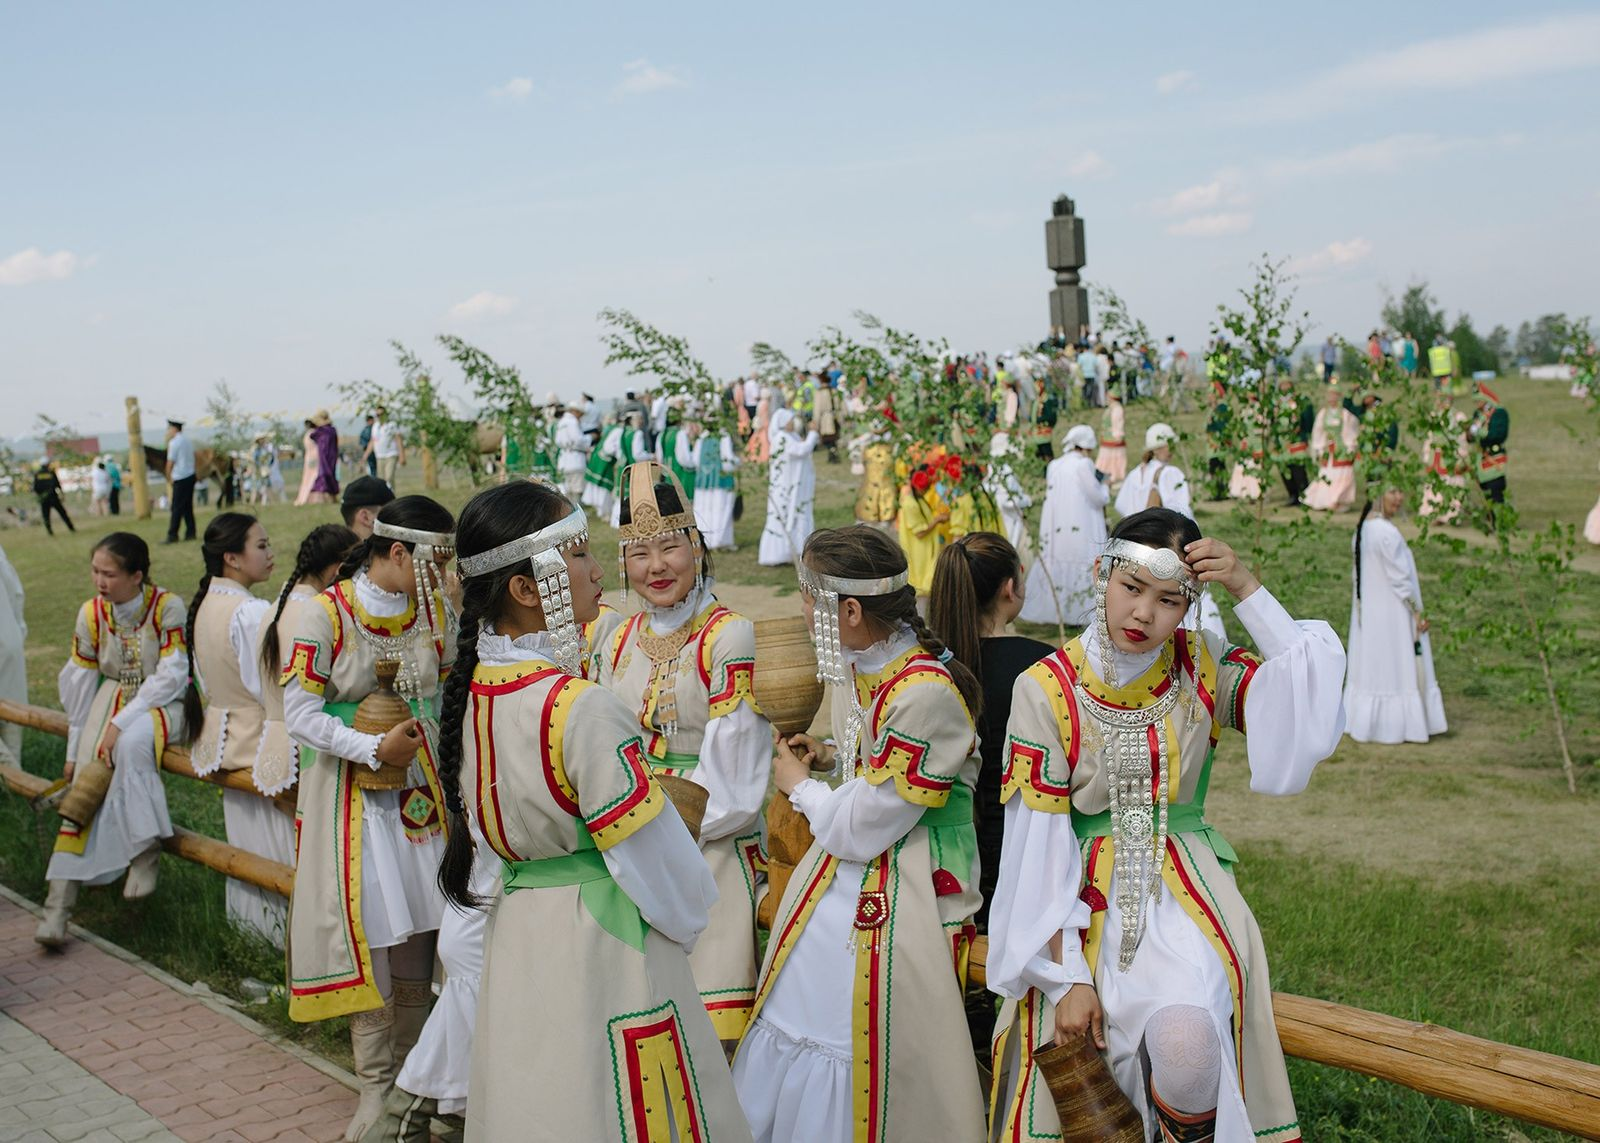 A young women's dance ensemble prepares for the opening ceremony at Us Khatyn's Ysyakh, which draws ...